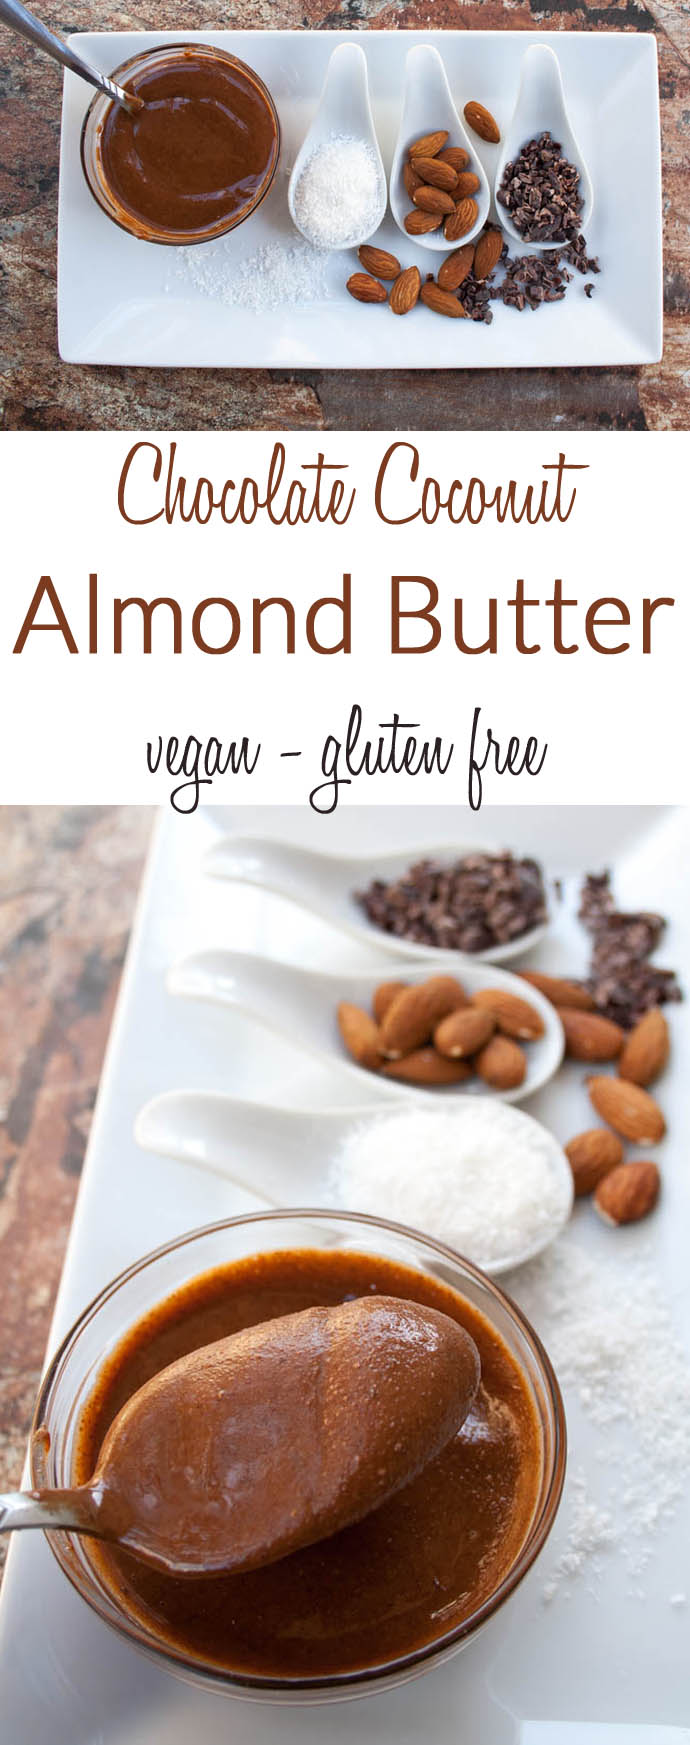 Chocolate Coconut Almond Butter (vegan, gluten free) - This is so good, you will want to eat it by the spoonful! It is dessert in a jar!